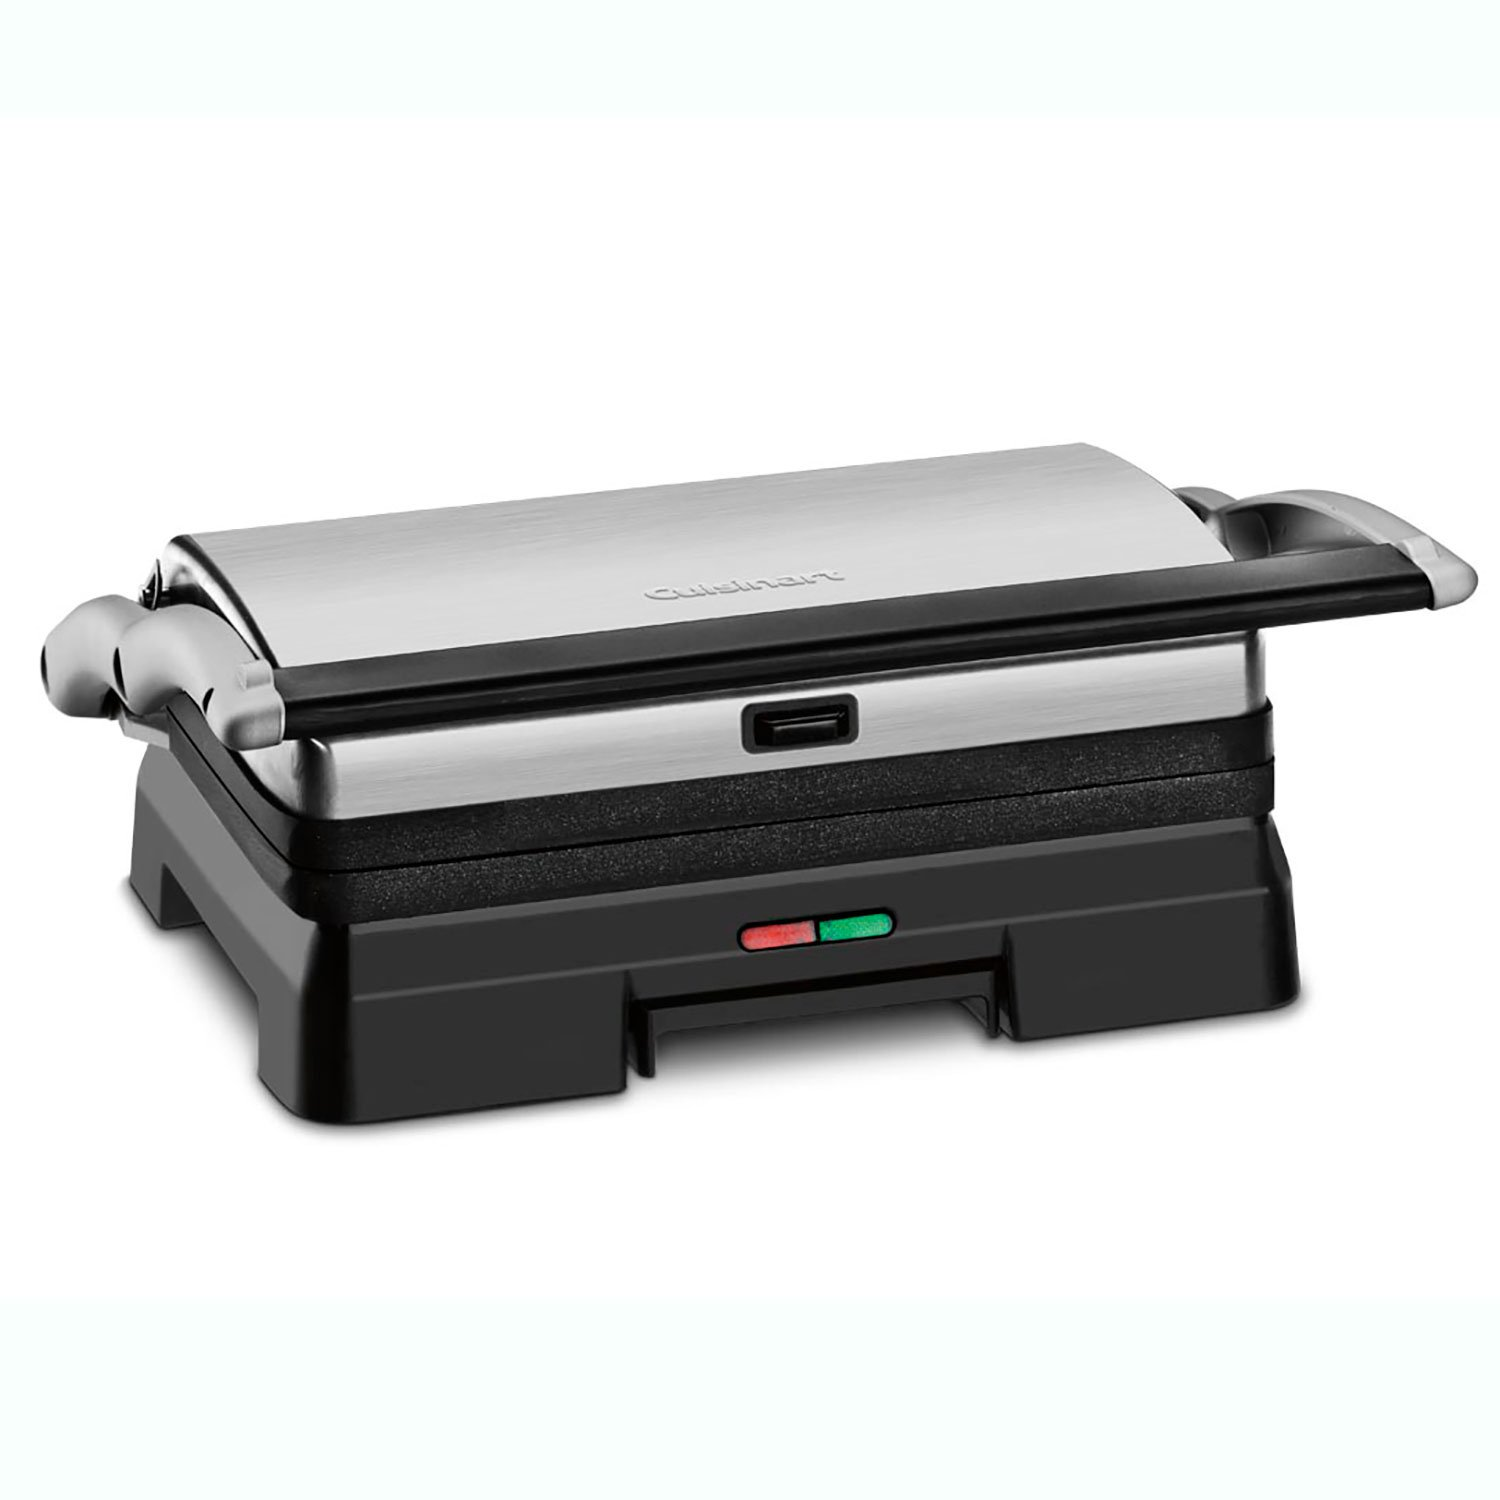 Cuisinart Stainless Steel Griddler Grill & Panini Press (Certified Refurbished)